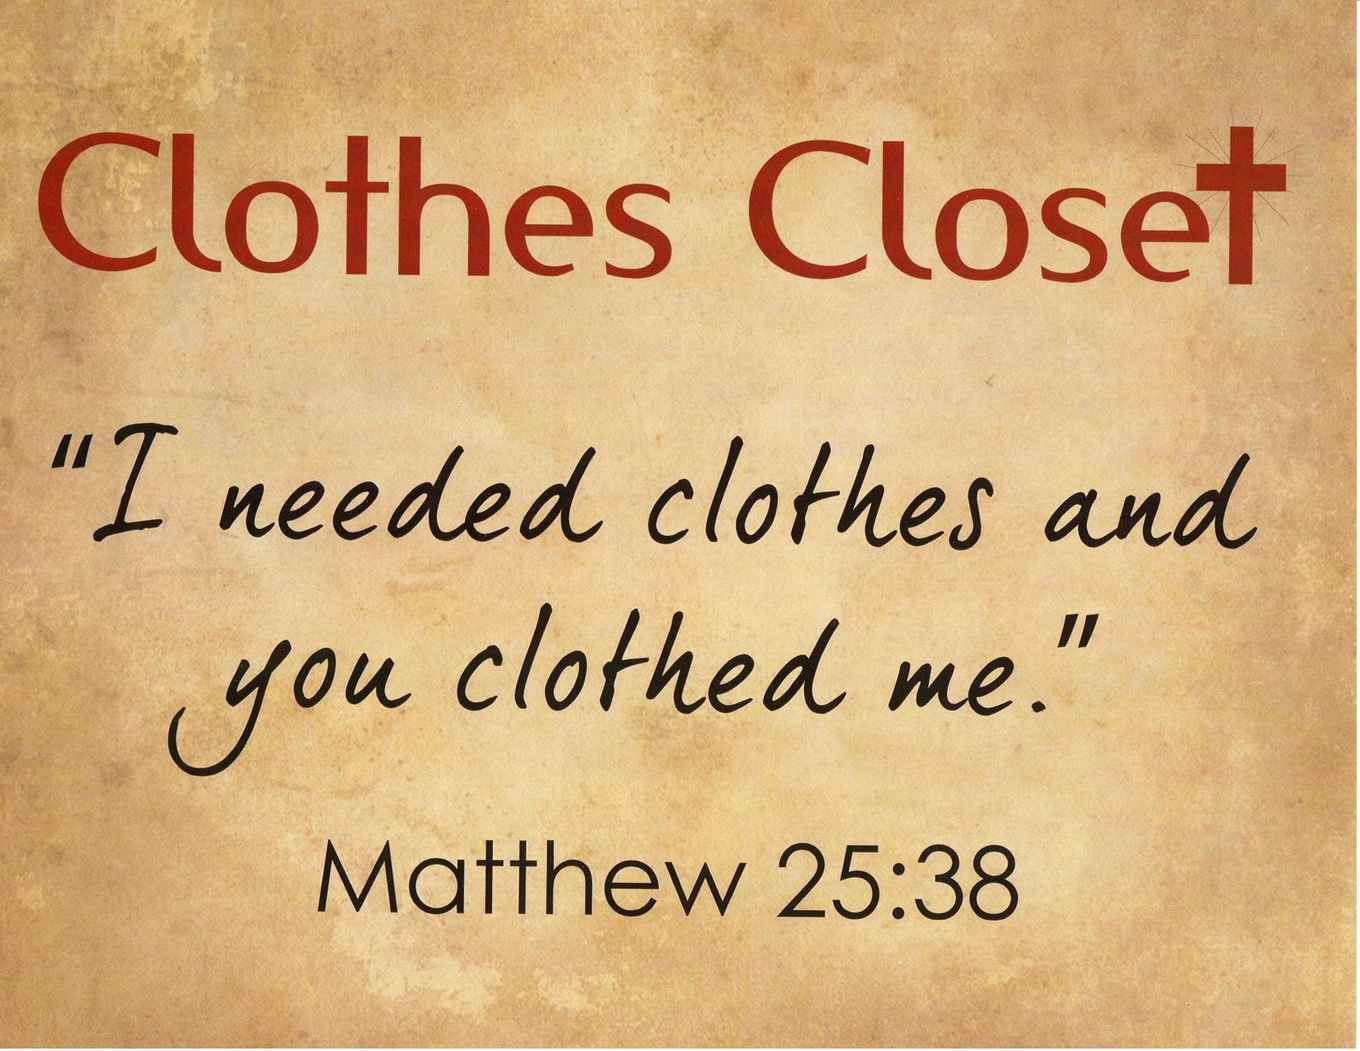 The Clothing Closet Is Filled With Donated New Or Gently Used Clothing